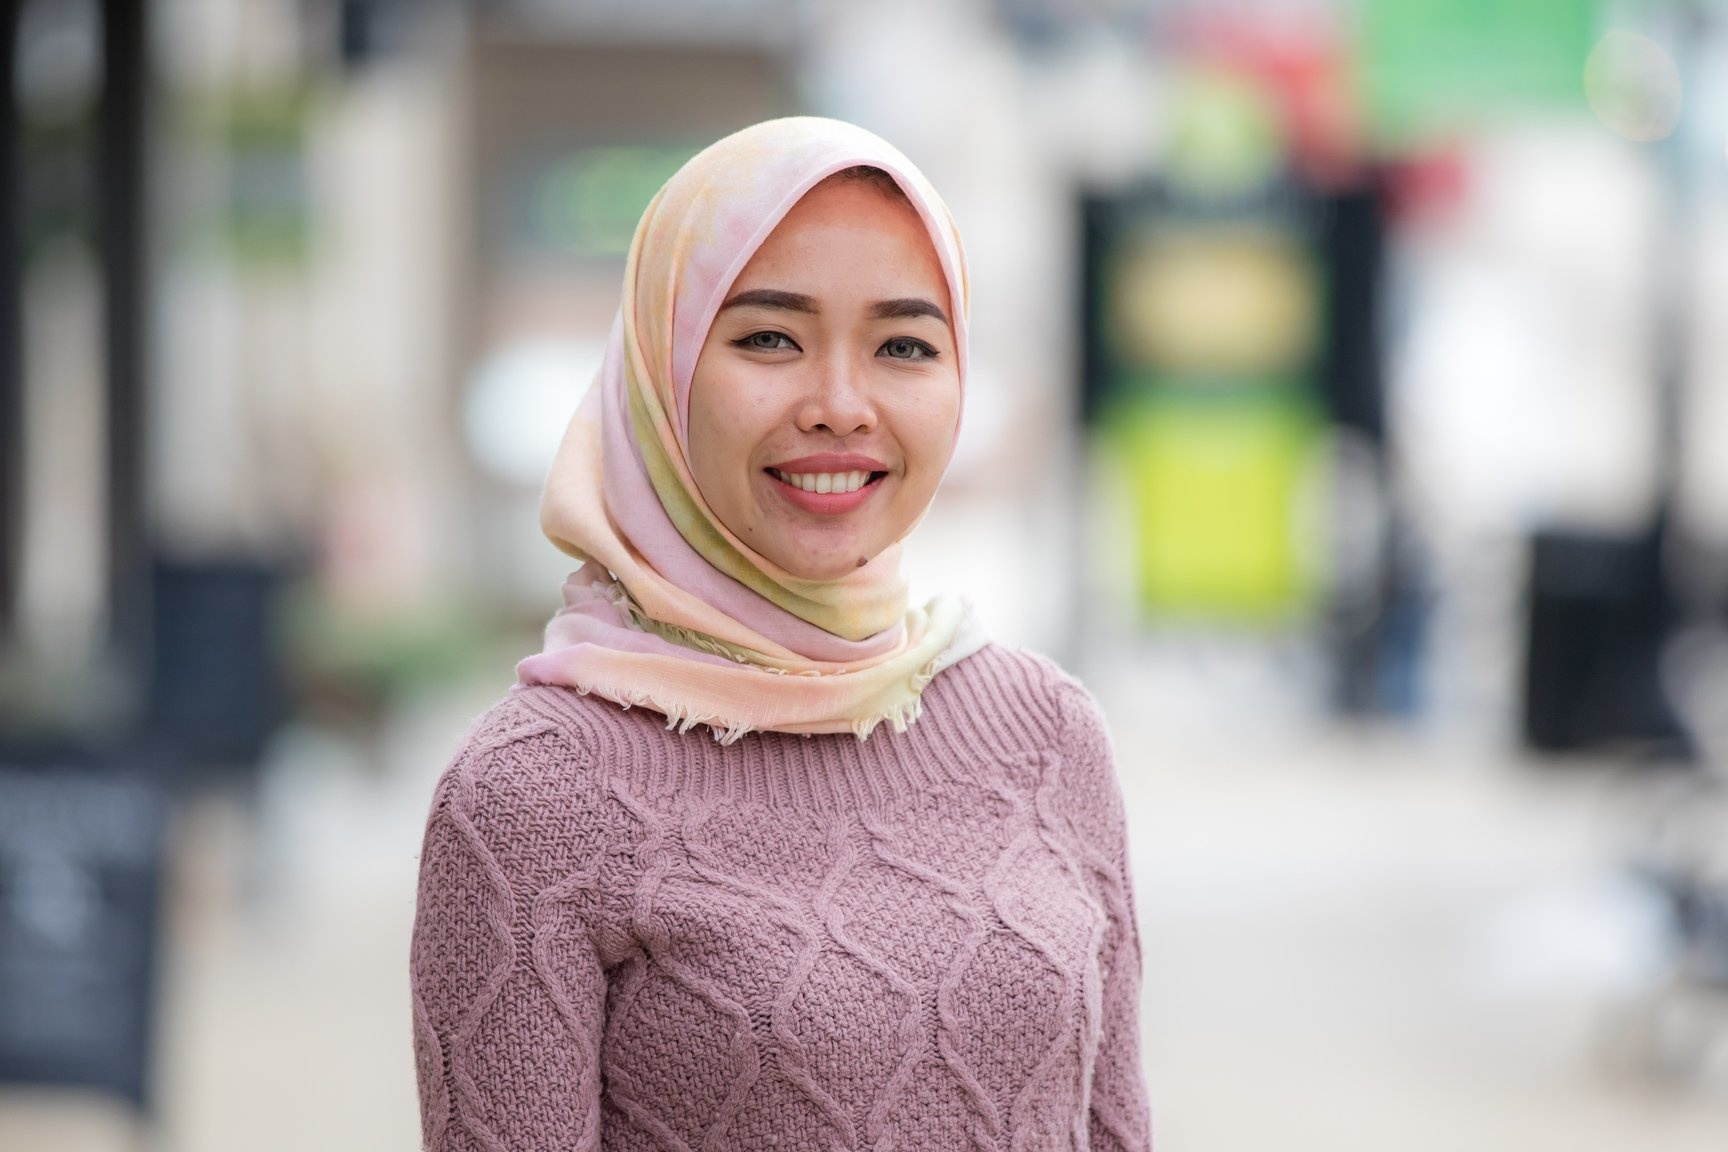 Meet our Operations Intern, Ria